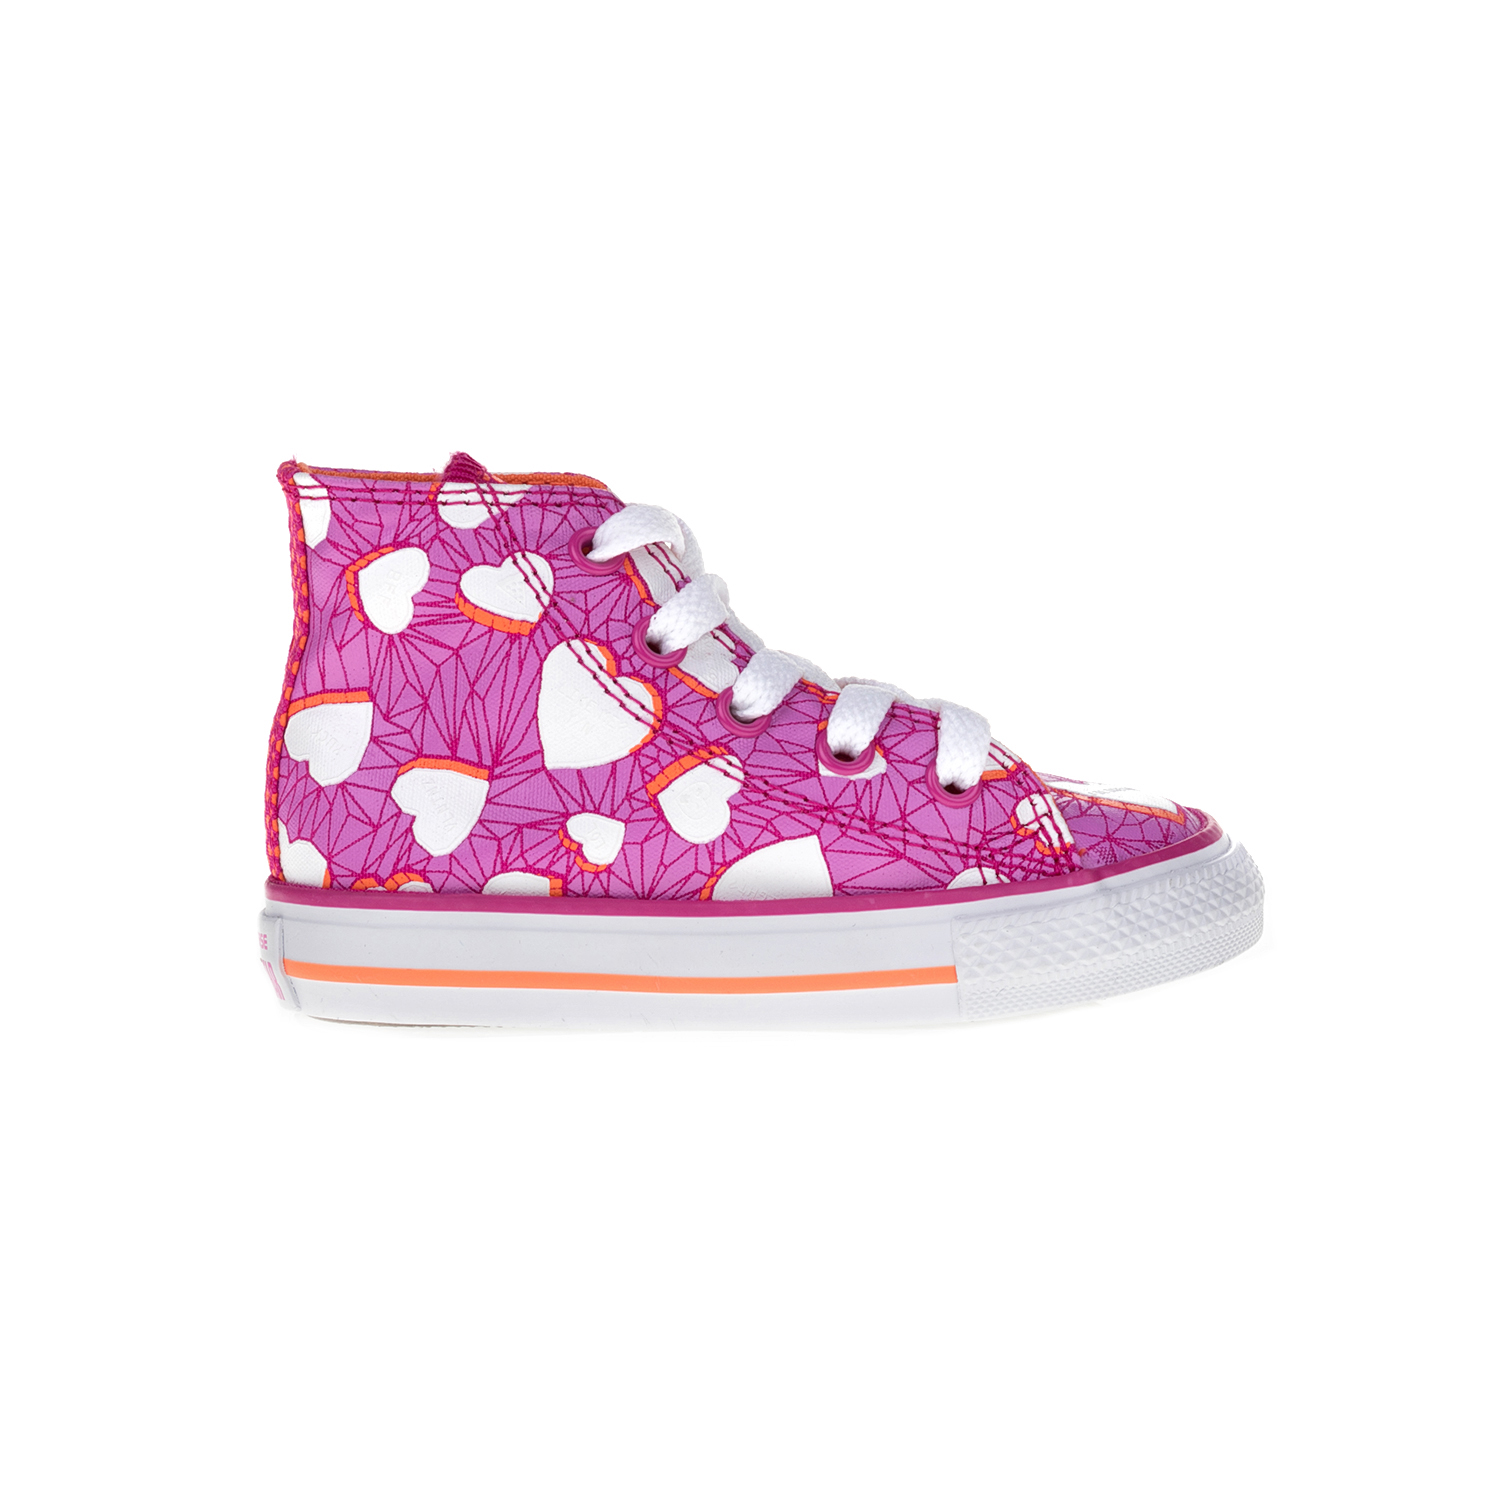 CONVERSE - Βρεφικά μποτάκια Chuck Taylor All Star Hi ροζ παιδικά baby παπούτσια sneakers